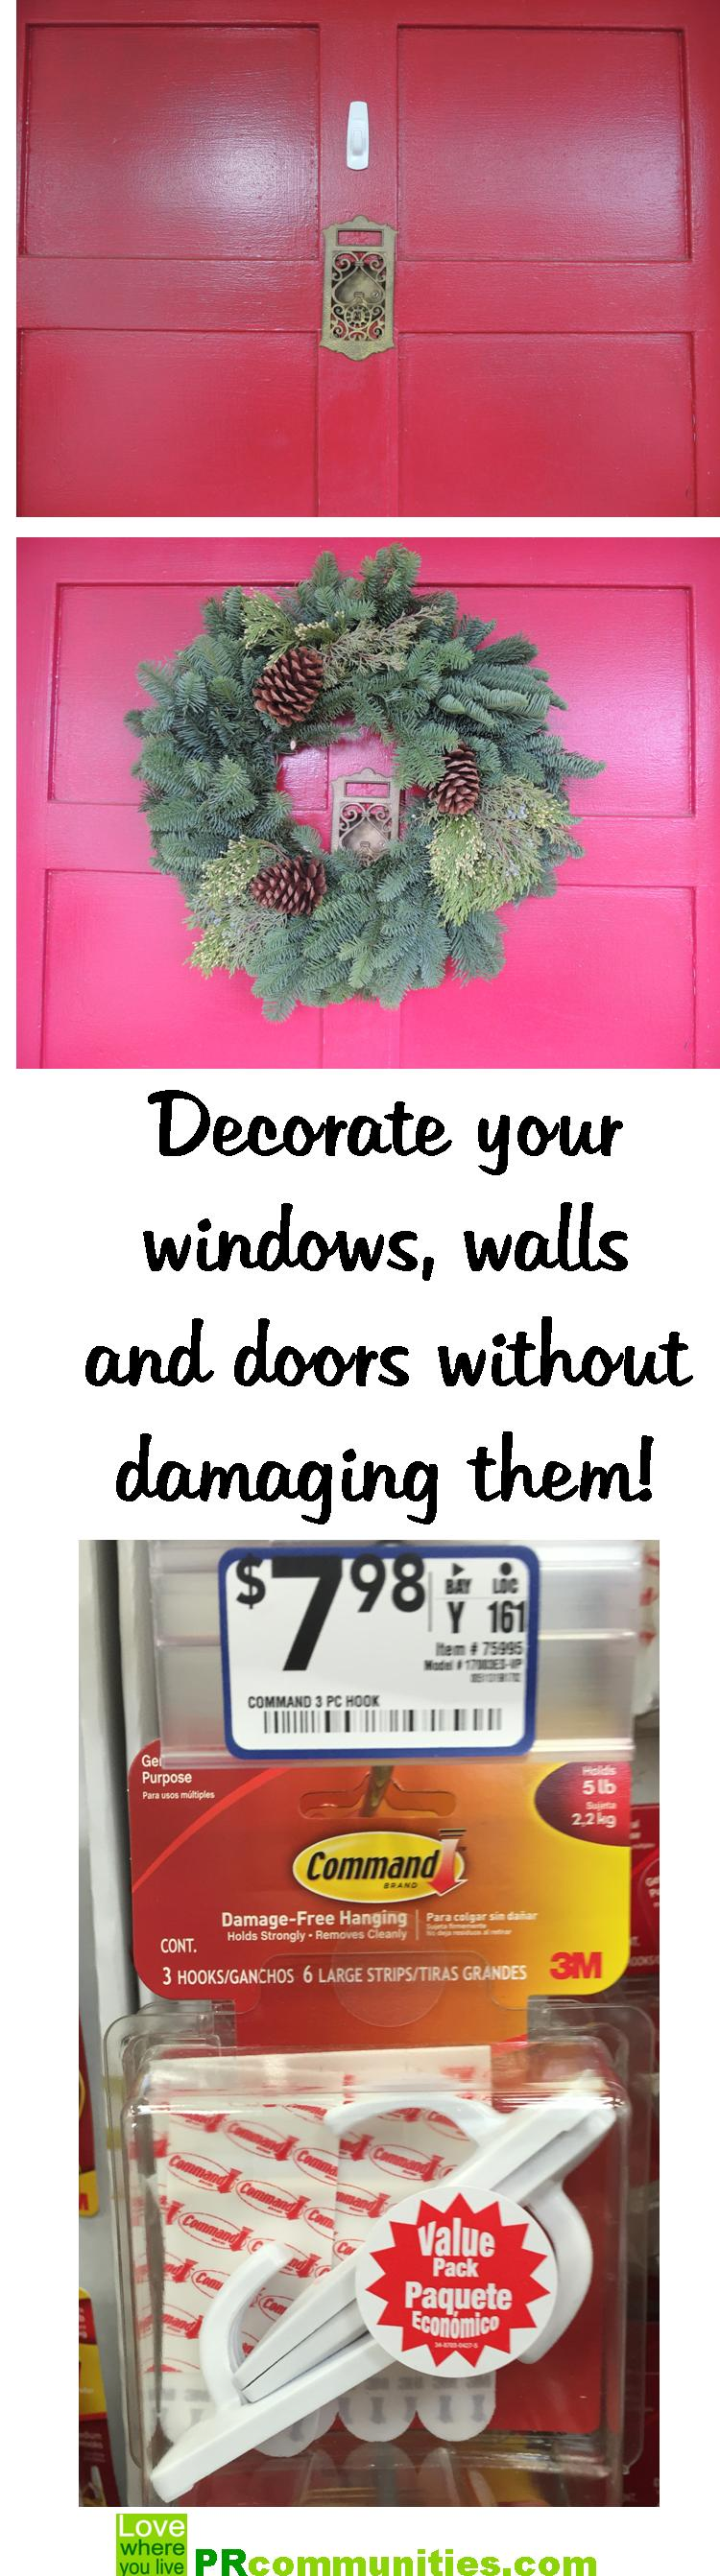 Decorate Without Damage